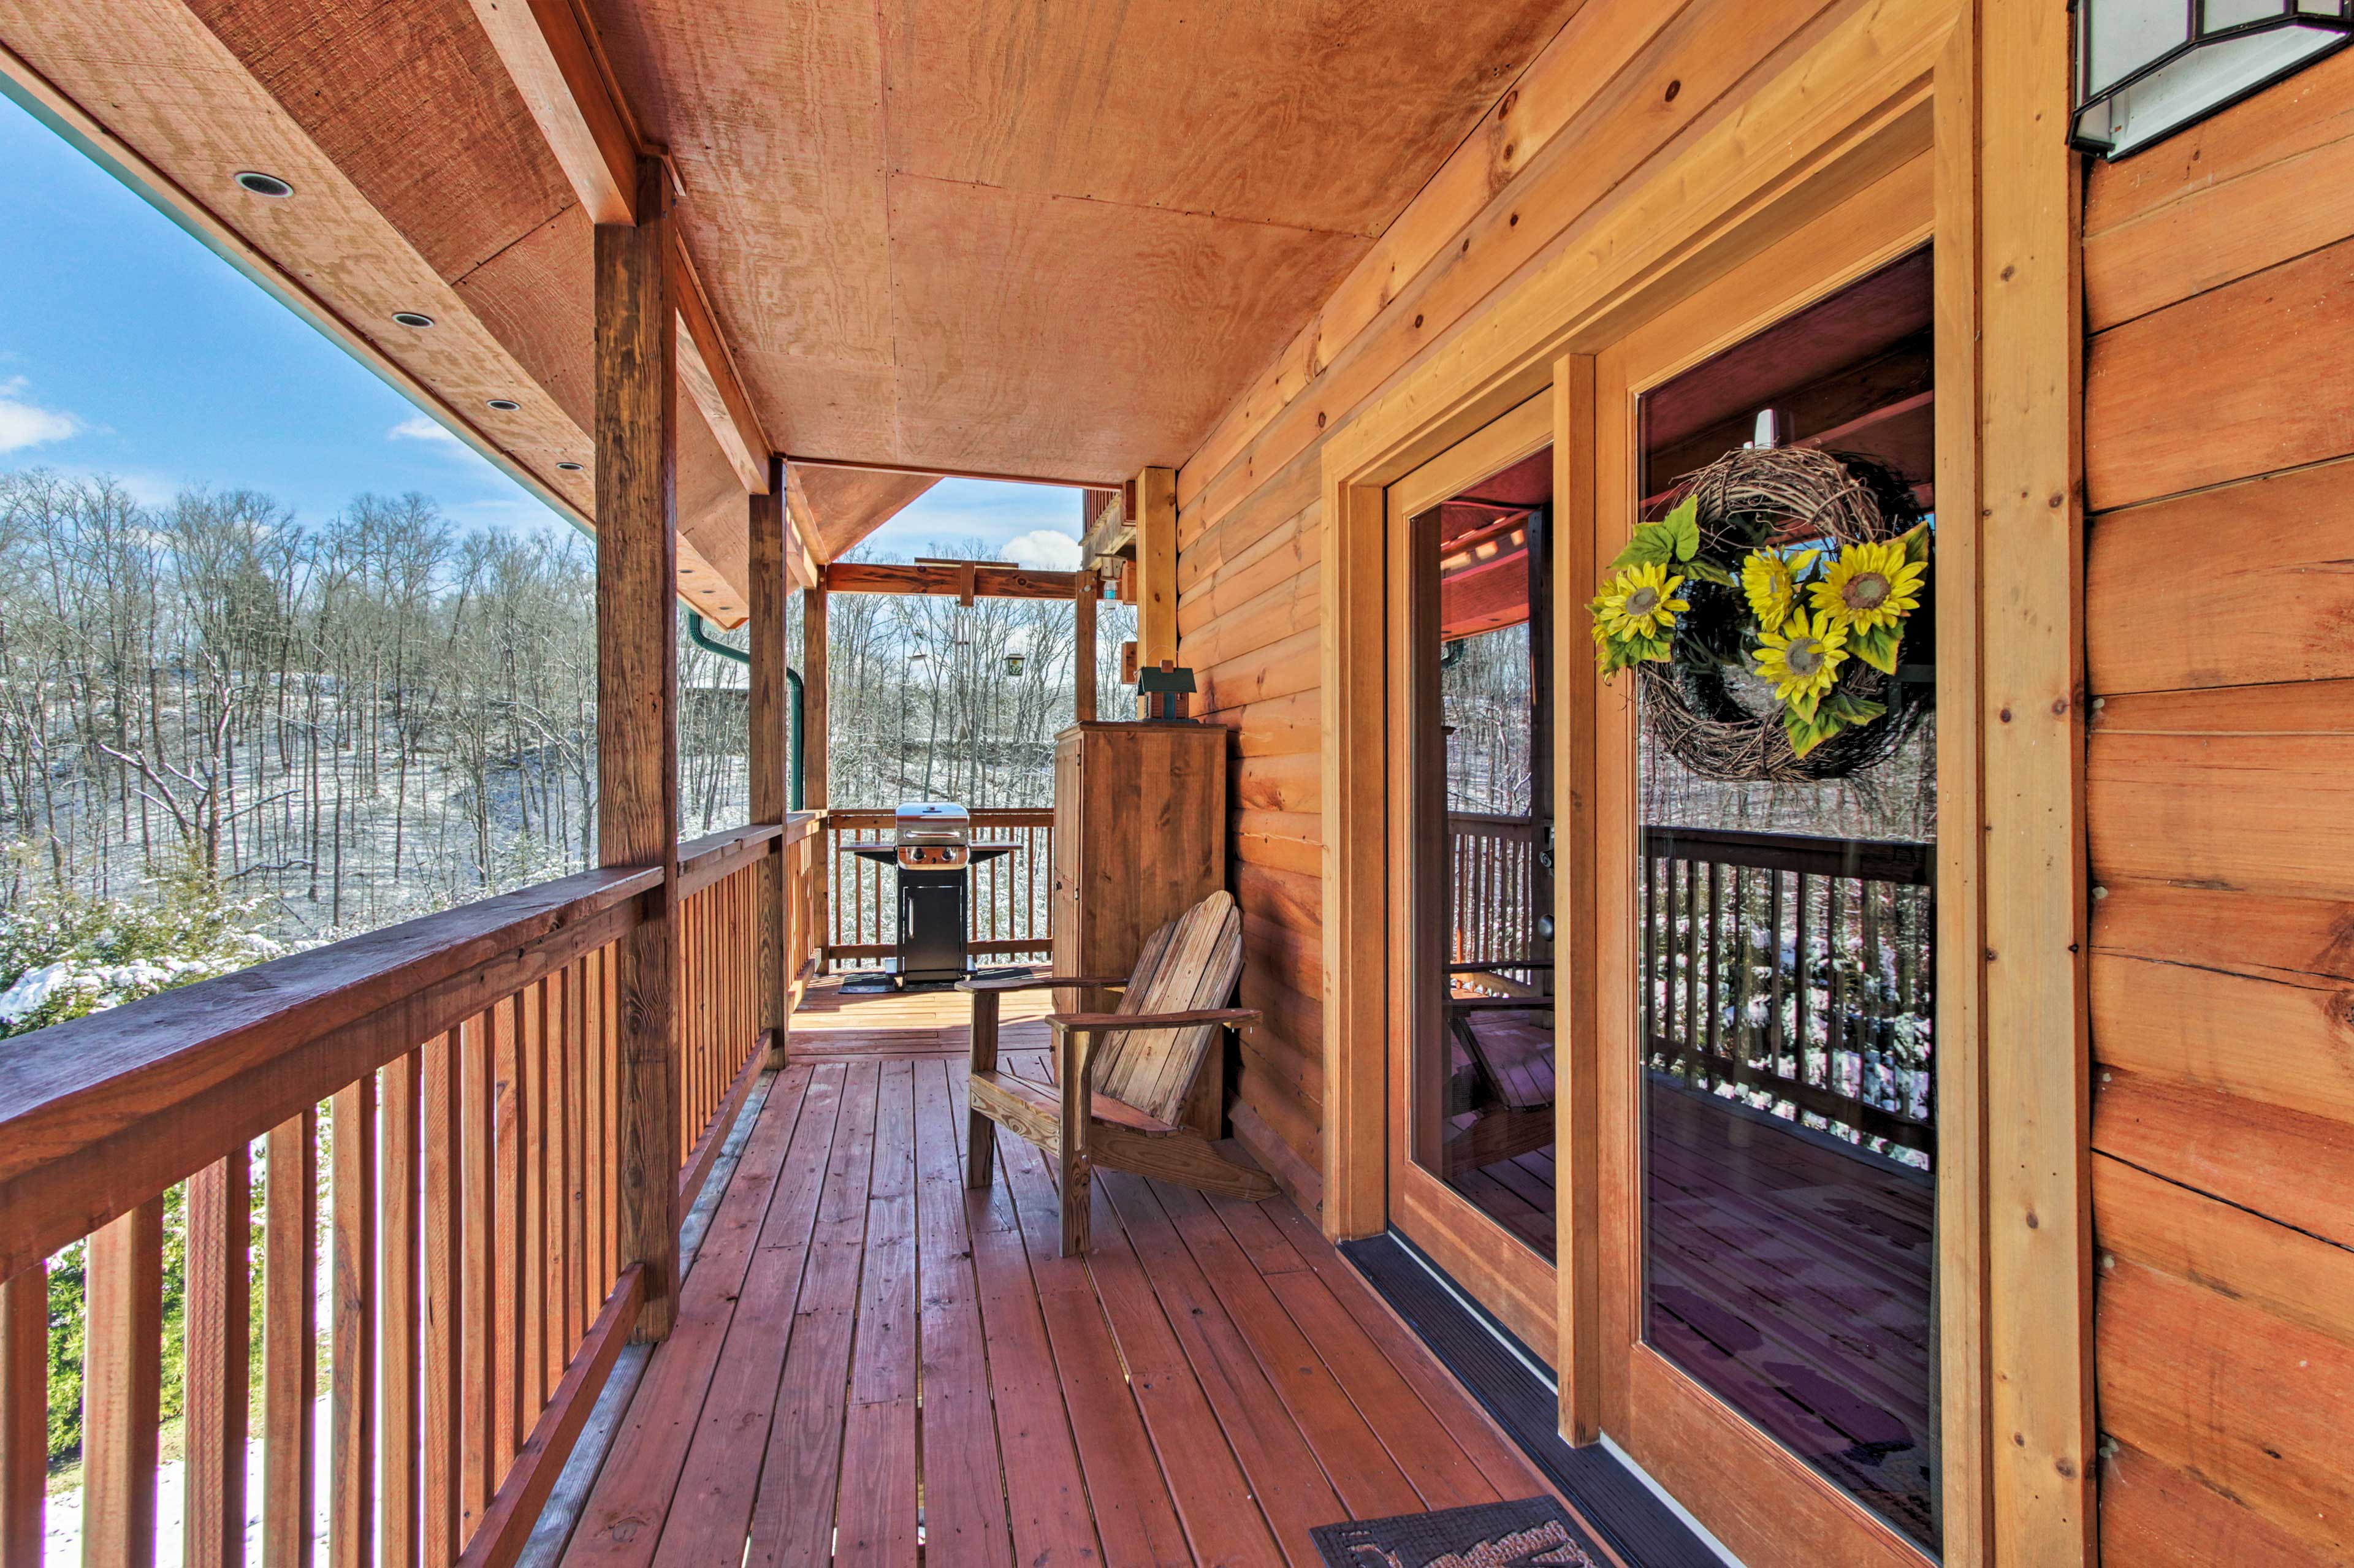 Slide open patio doors and head out to the wraparound balcony.